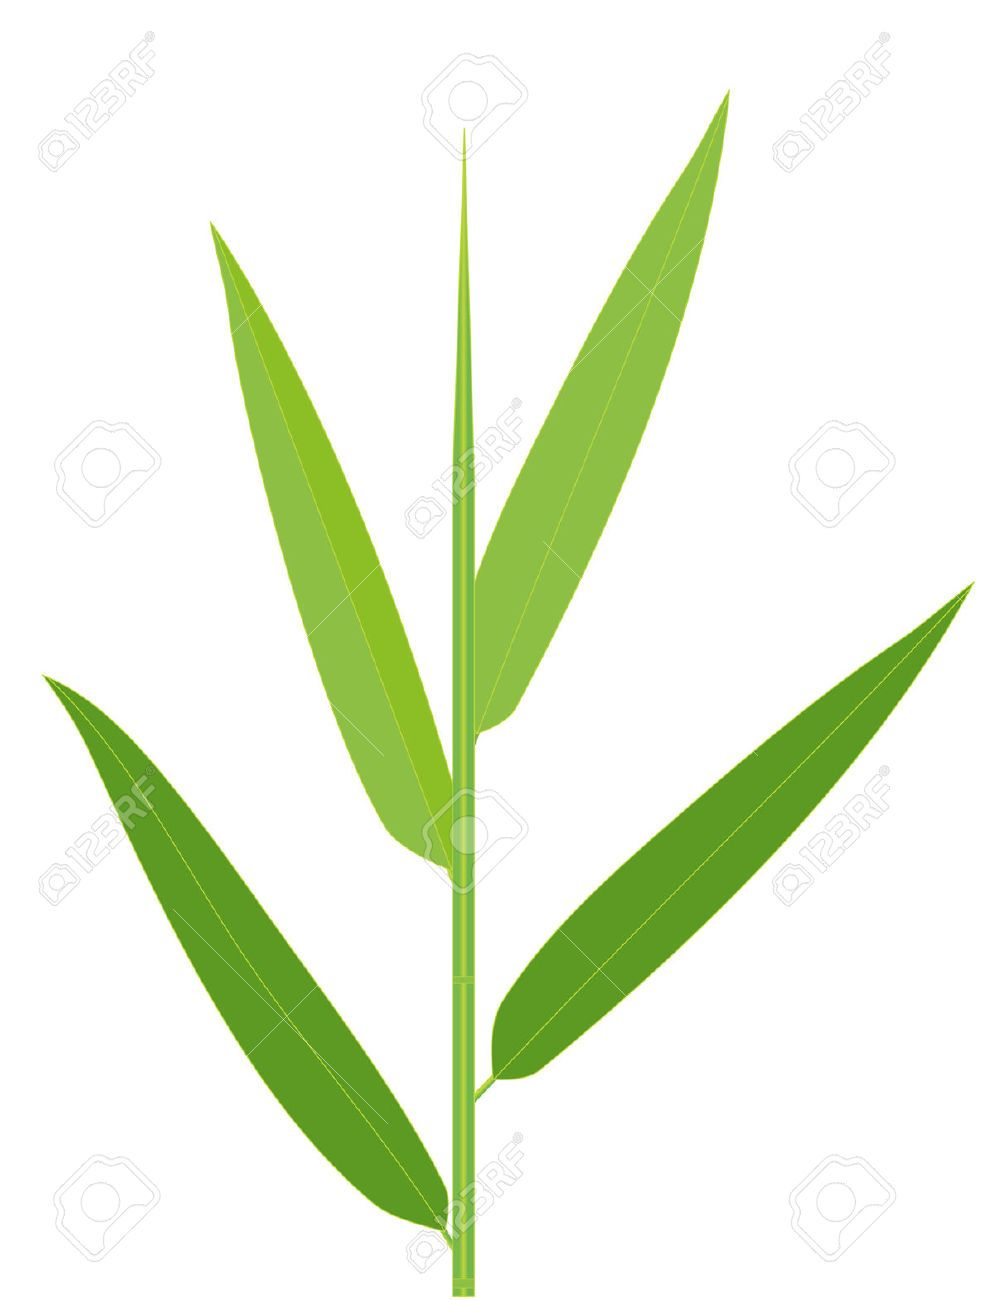 992x1300 Vector Illustration Of Bamboo Leaves Isolated On White Trees